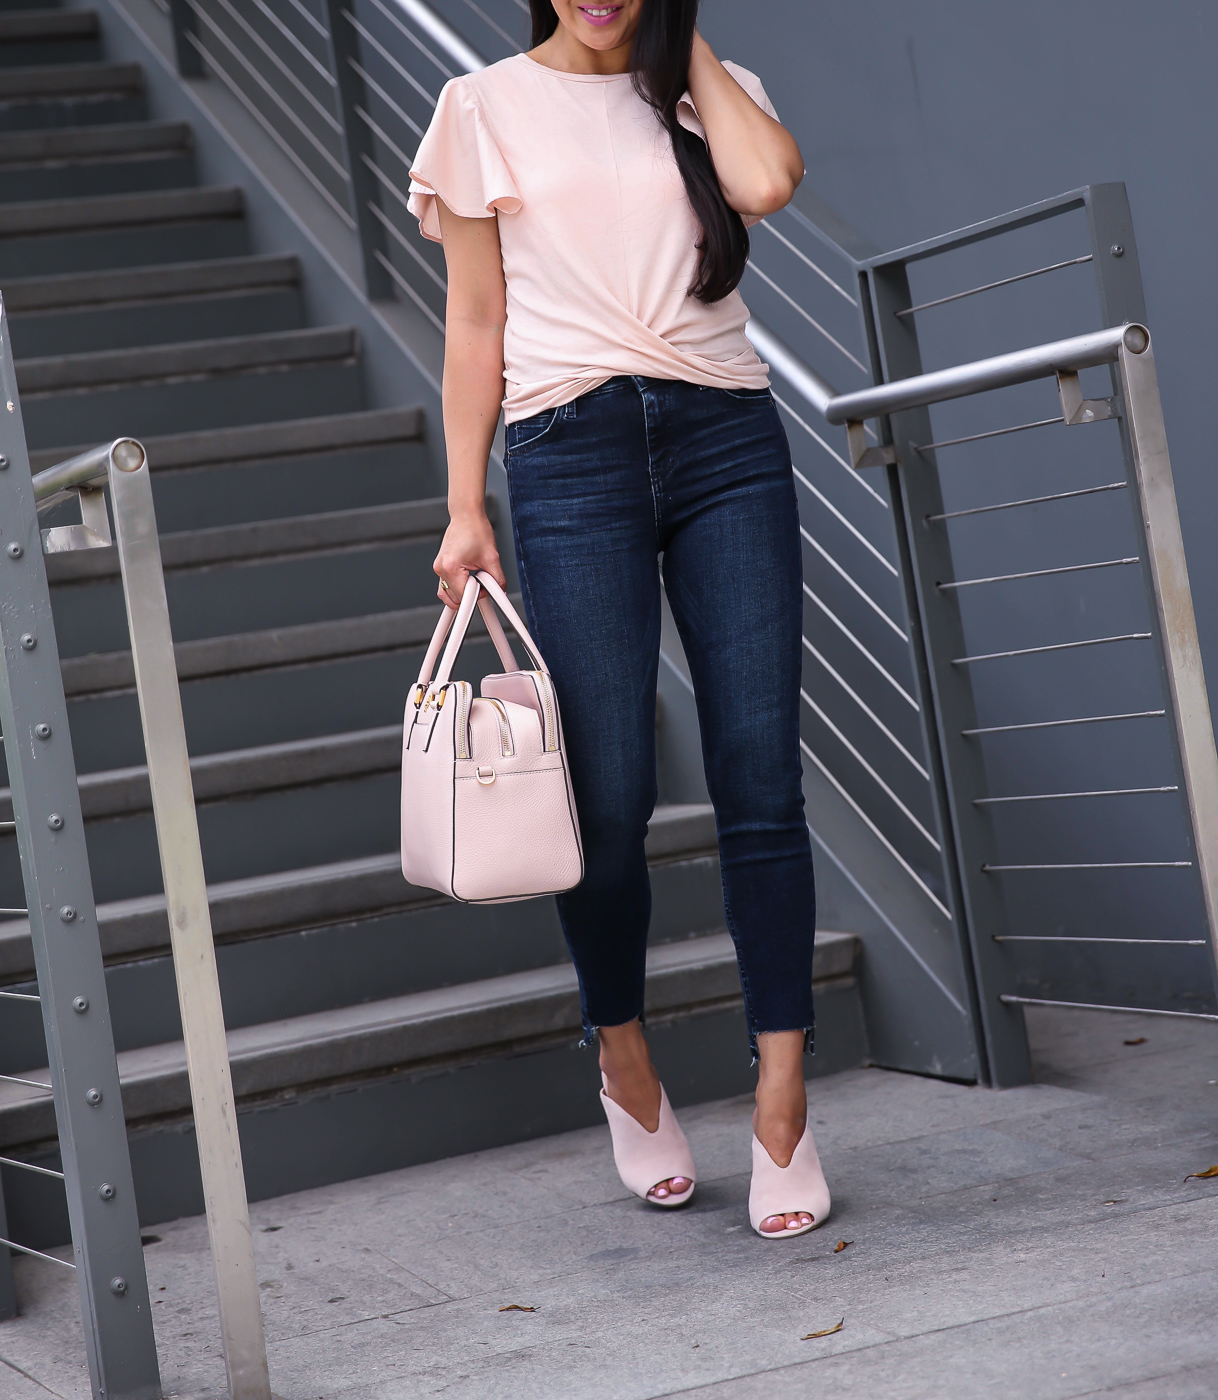 step hem jeans twist front ruffle sleeve tee pink mules casual outfit